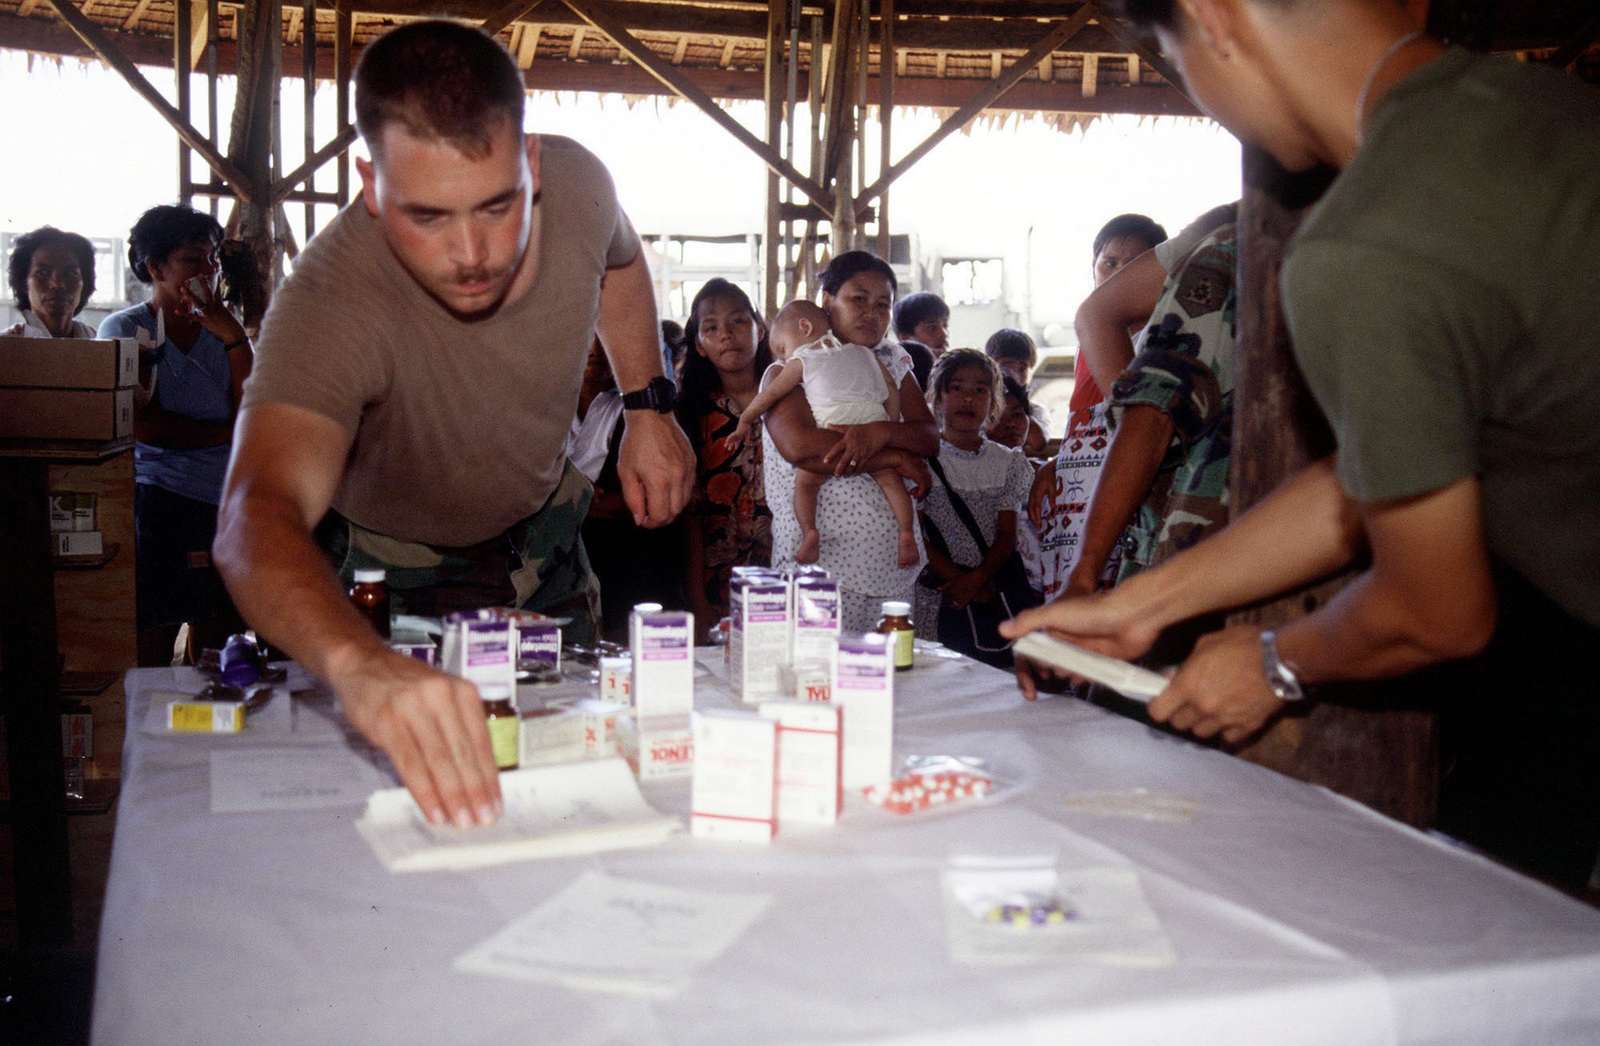 """A U.S. Army soldier from the 426th Civil Affairs, Upland, CA, prepares a myriad of medicines for nearby villagers during OPERATION BALIKATAN '92, the 12th year U.S. Army and Filipino service members have worked side by side to """"shoulder the load together,"""" the Tagalog interpretation of """"balikatan."""" Medical as well as other aid such as engineering and construction is given the Filipino villagers"""